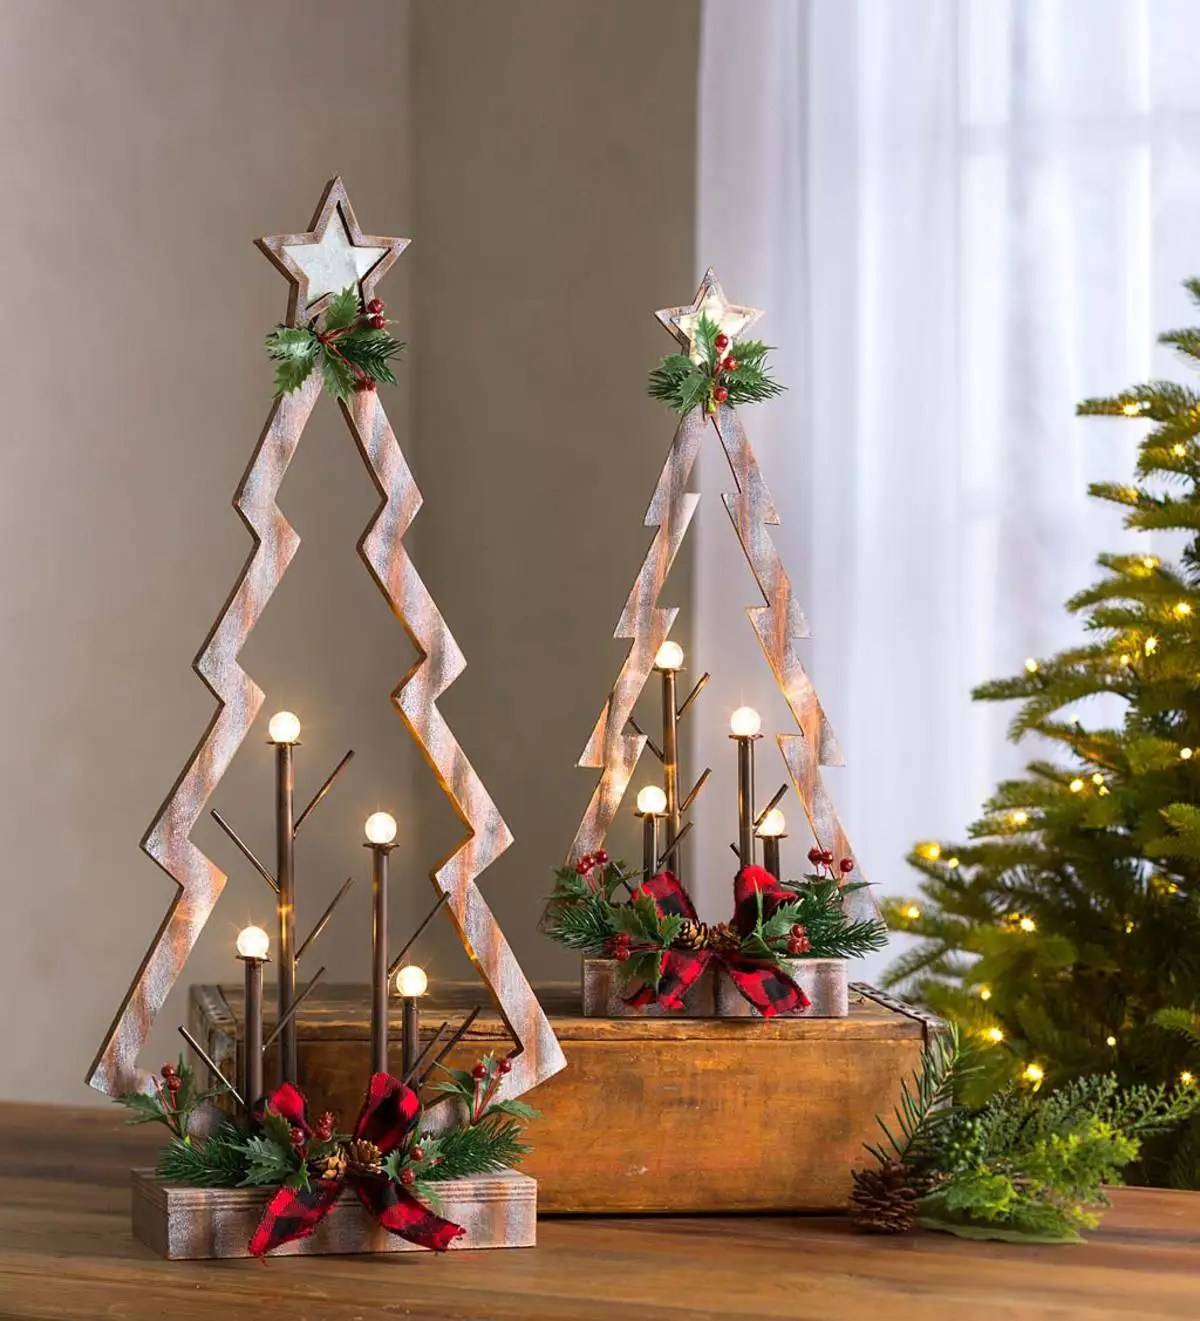 Tabletop Lighted Wooden Christmas Trees Set Of 2 Wind And Weather